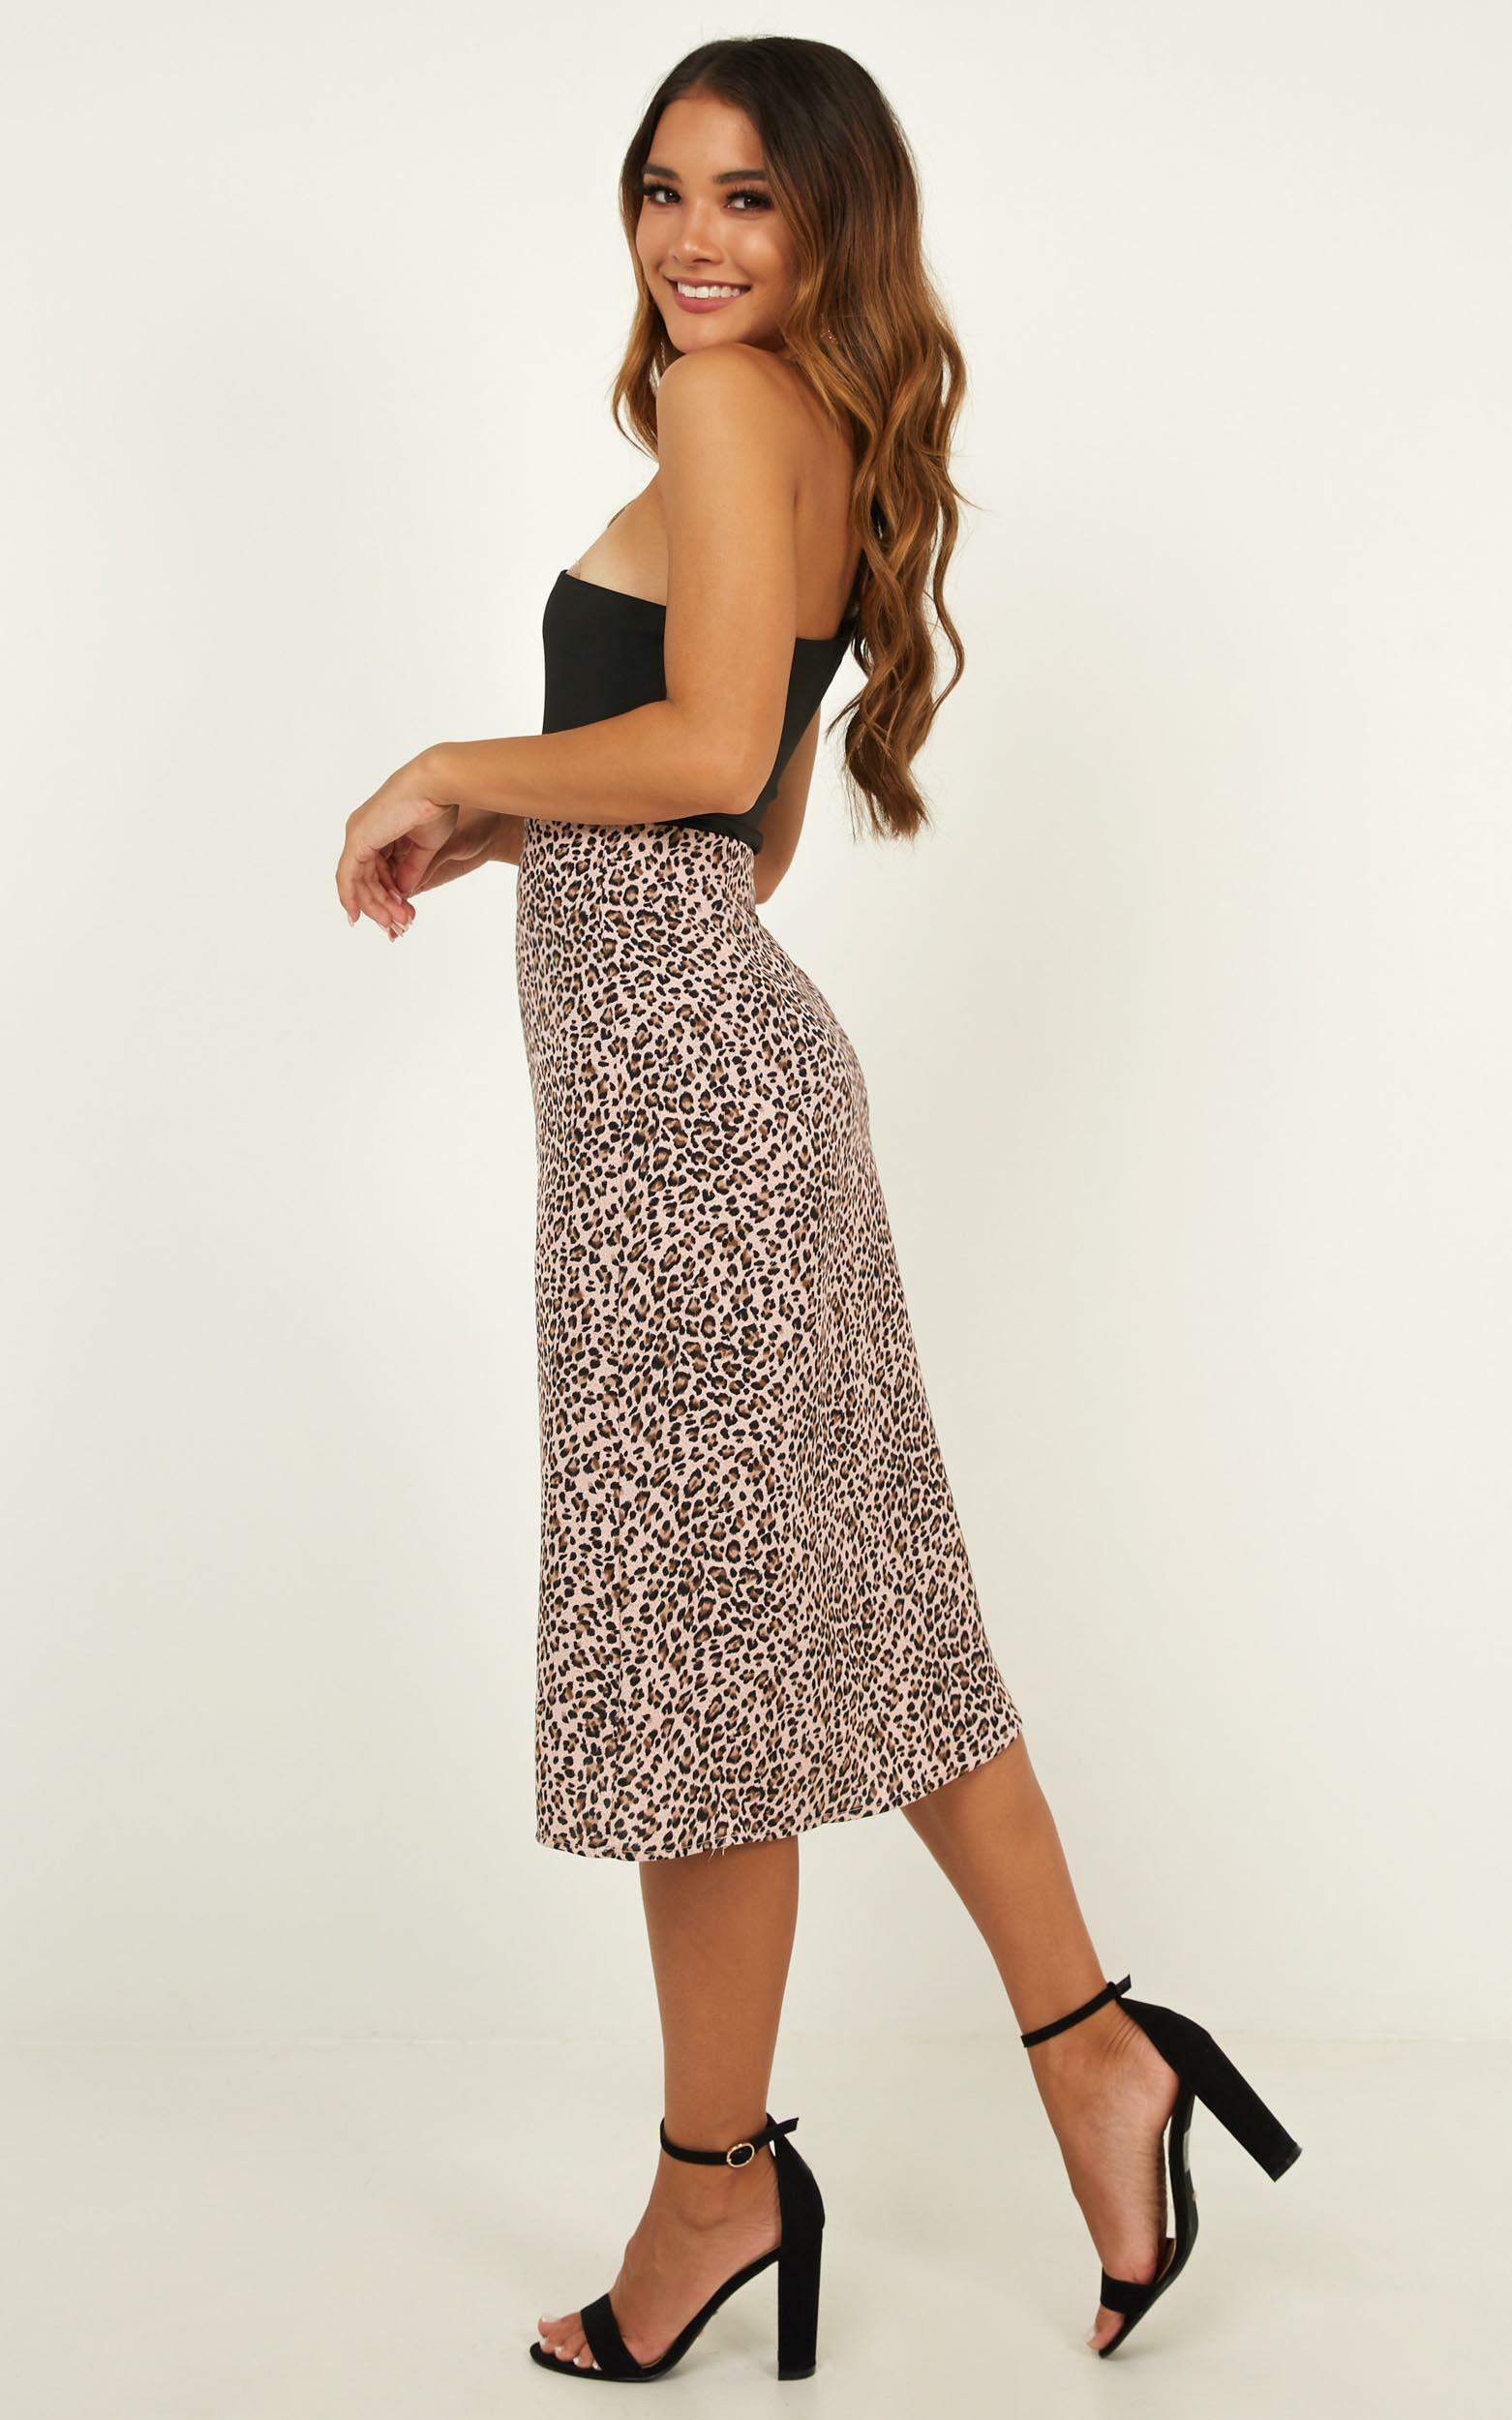 True Reality skirt in pink leopard print - 12 (L), Pink, hi-res image number null